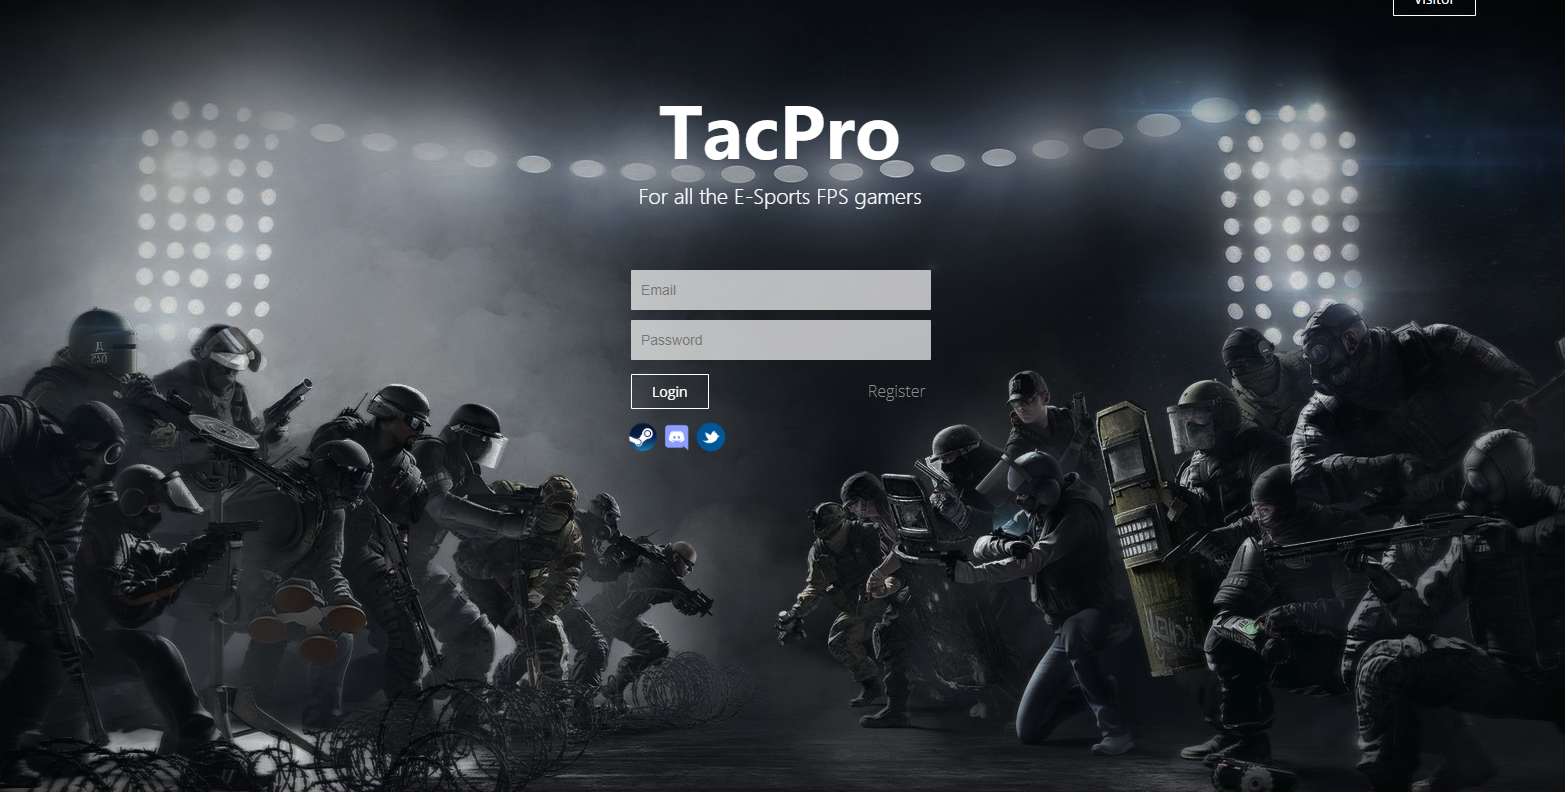 TACPRO - WEBSITE DESIGNED FOR FPS GAMERS